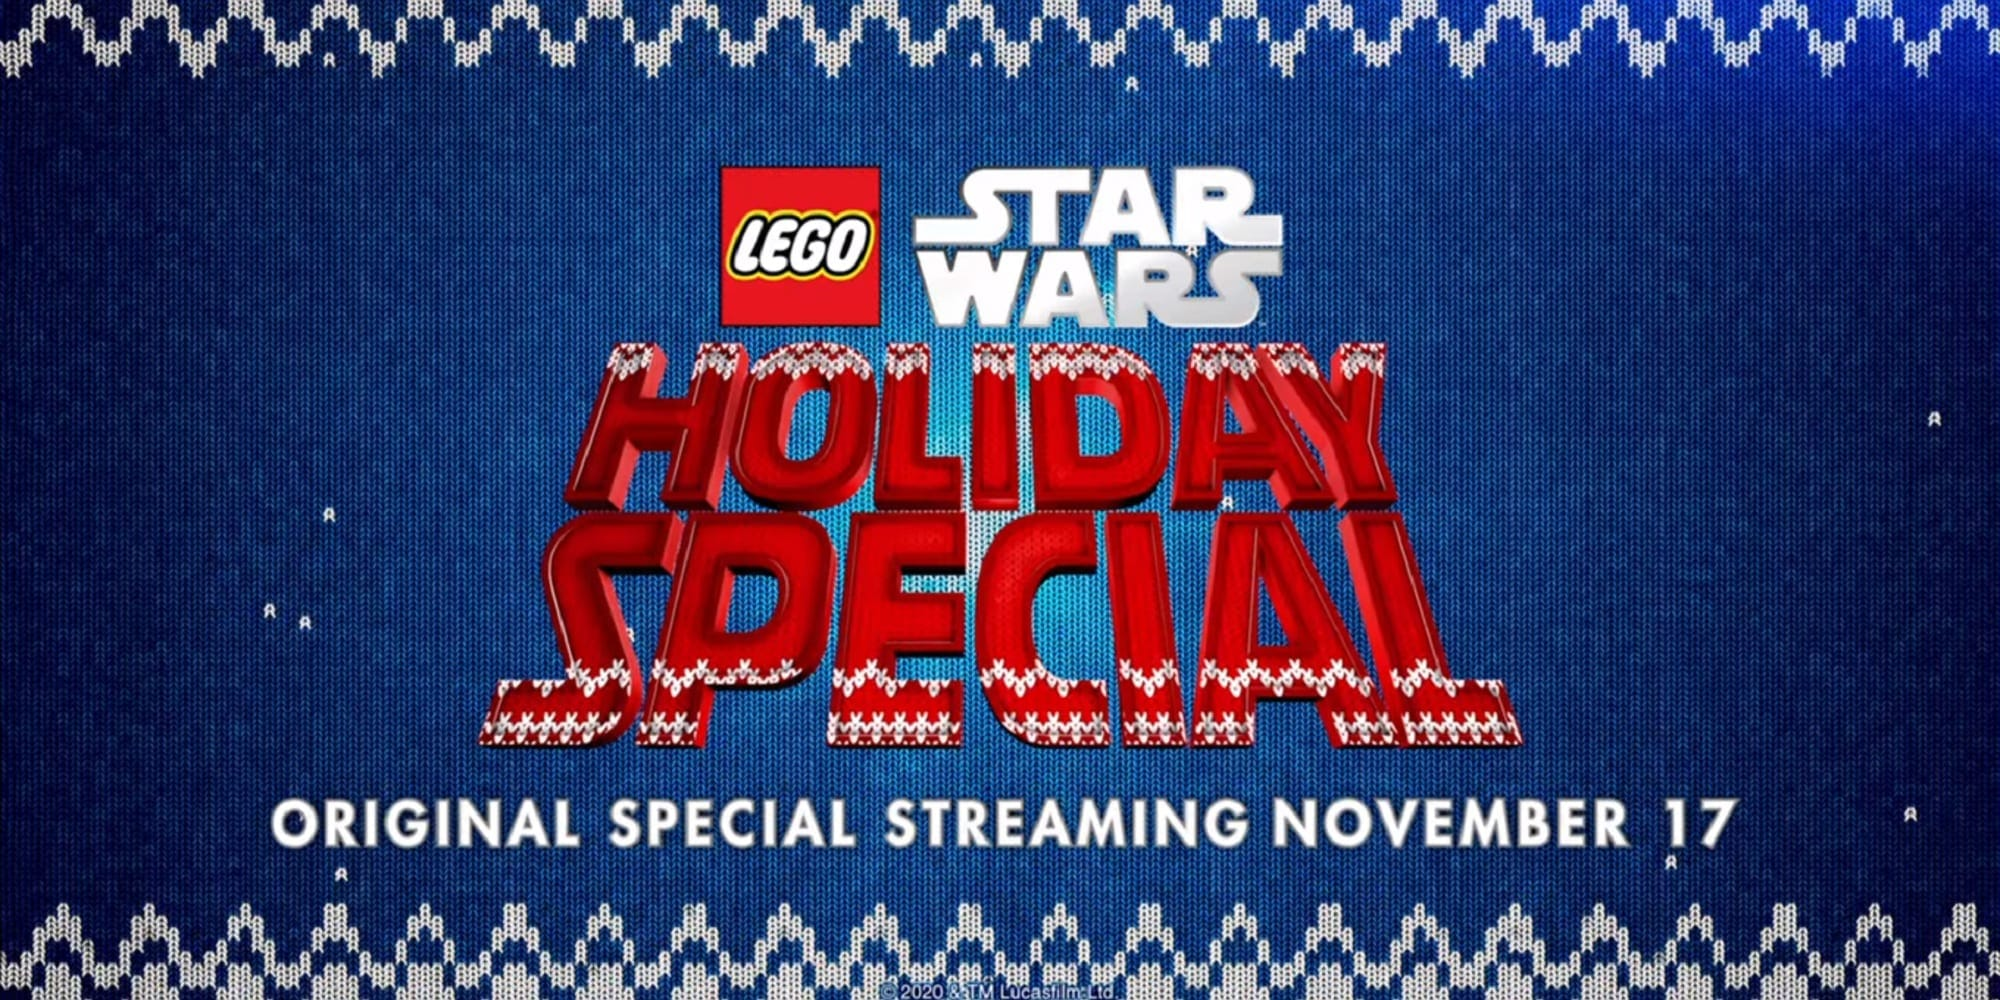 Star Wars Lego Holiday Special Trailer Featured Screengrab